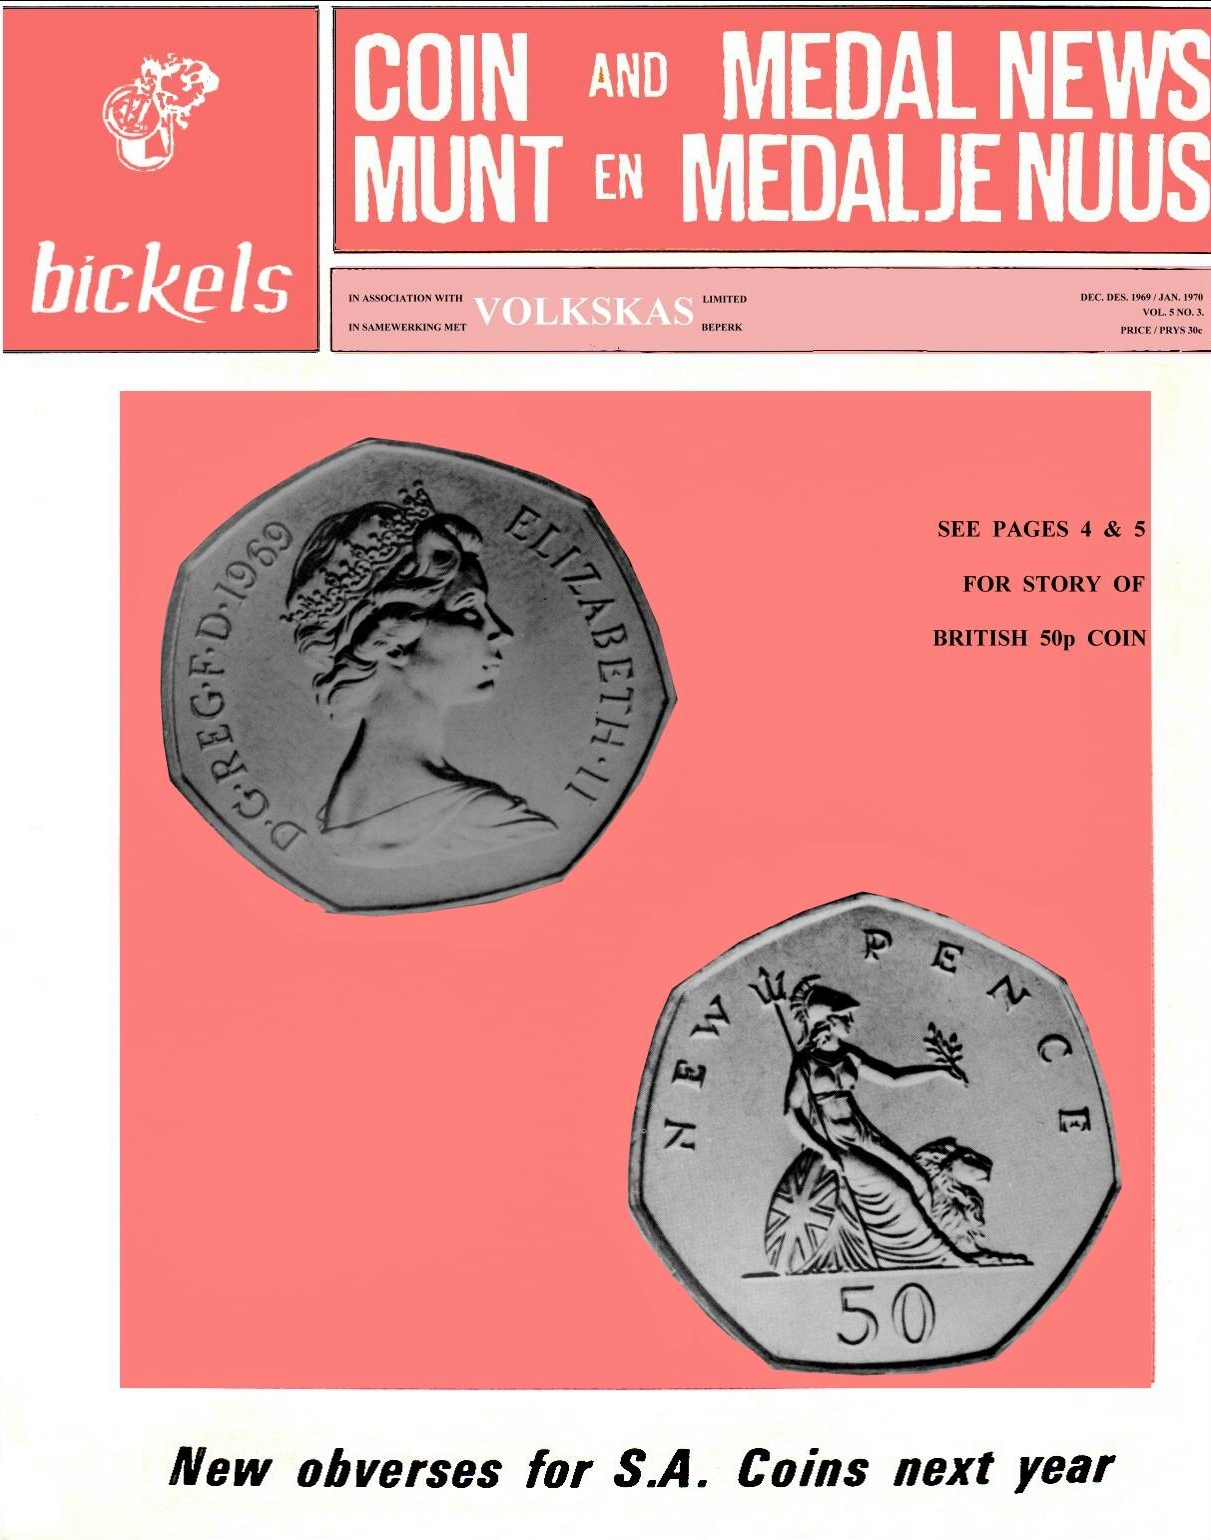 Bickels Coin & Medal News December 1969 January 1970 Vol 5 No 3